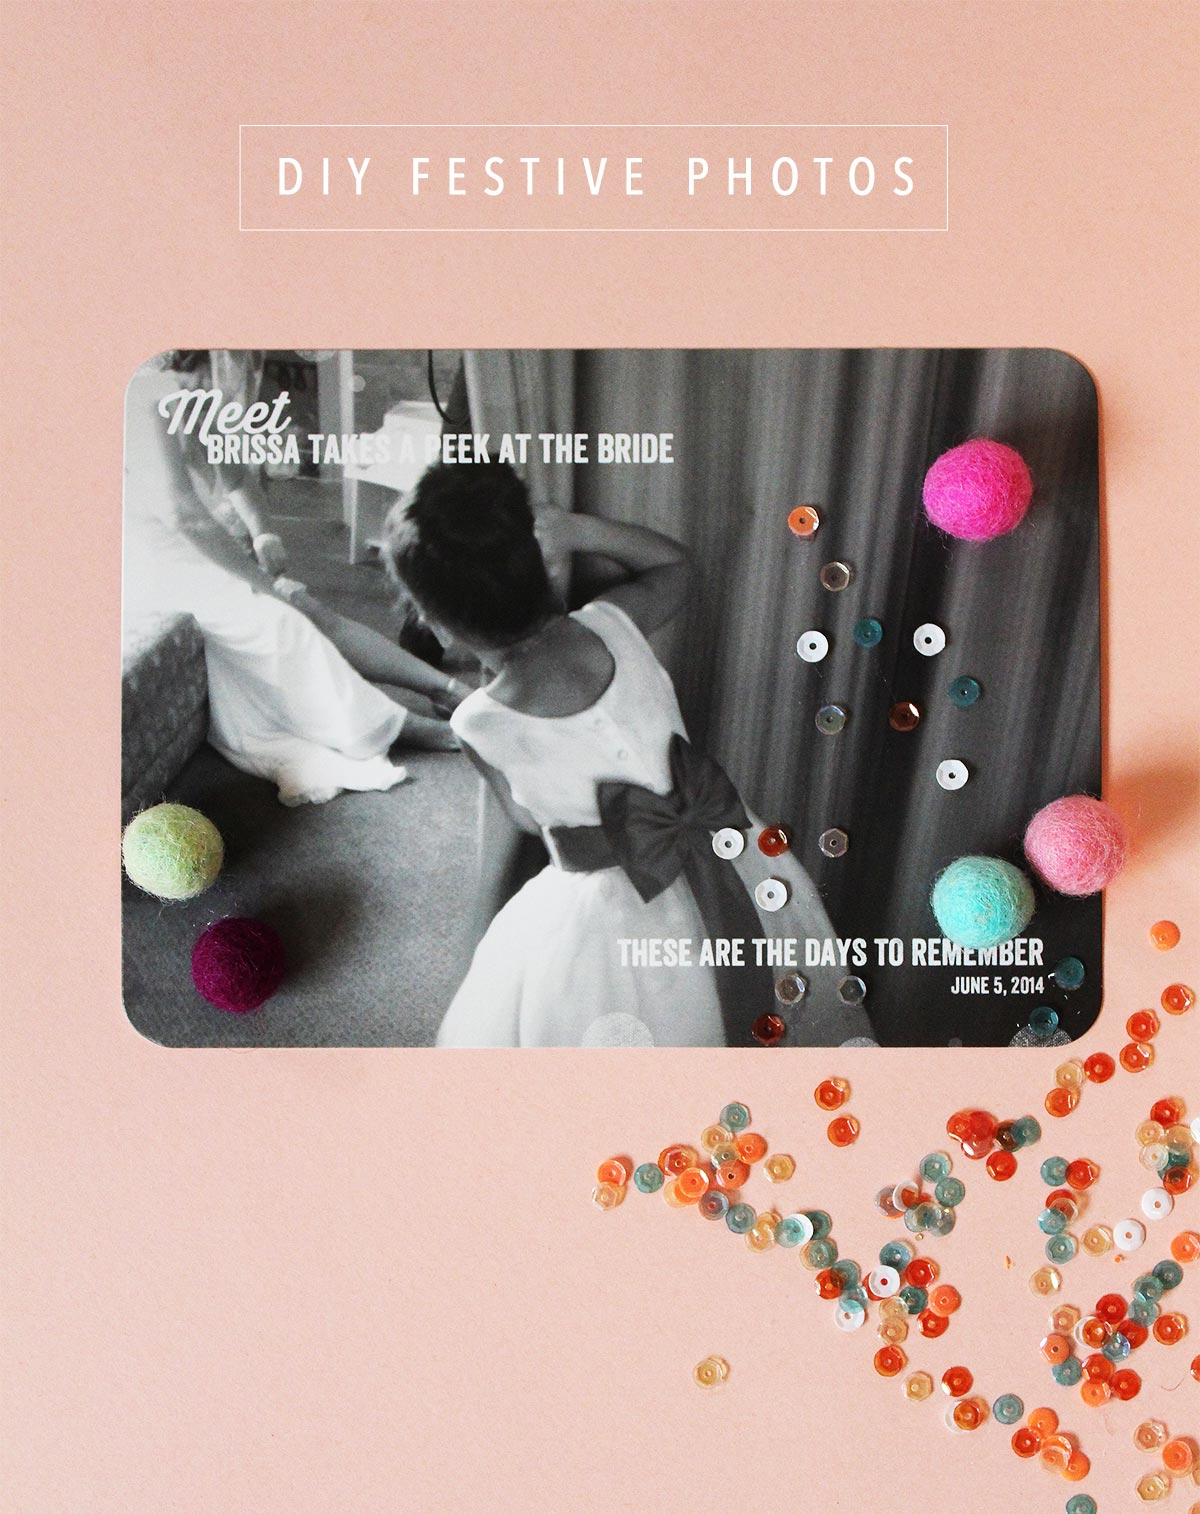 Transform your photos into festive decor